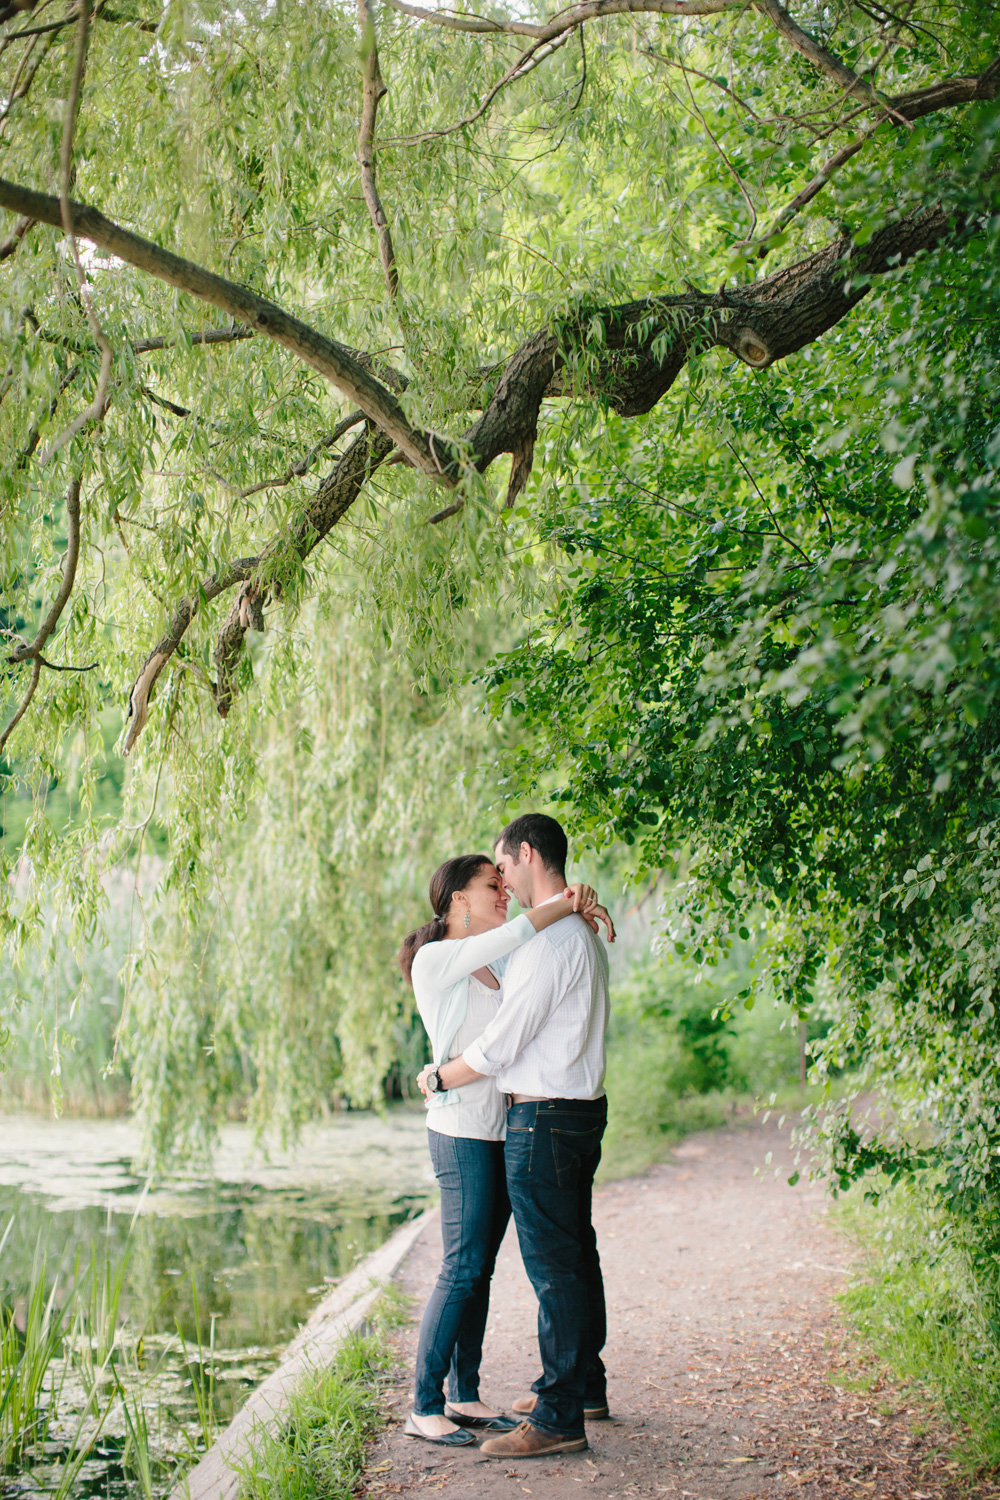 Melissa-Sung-Photography-High-Park-Engagement-Session010.jpg